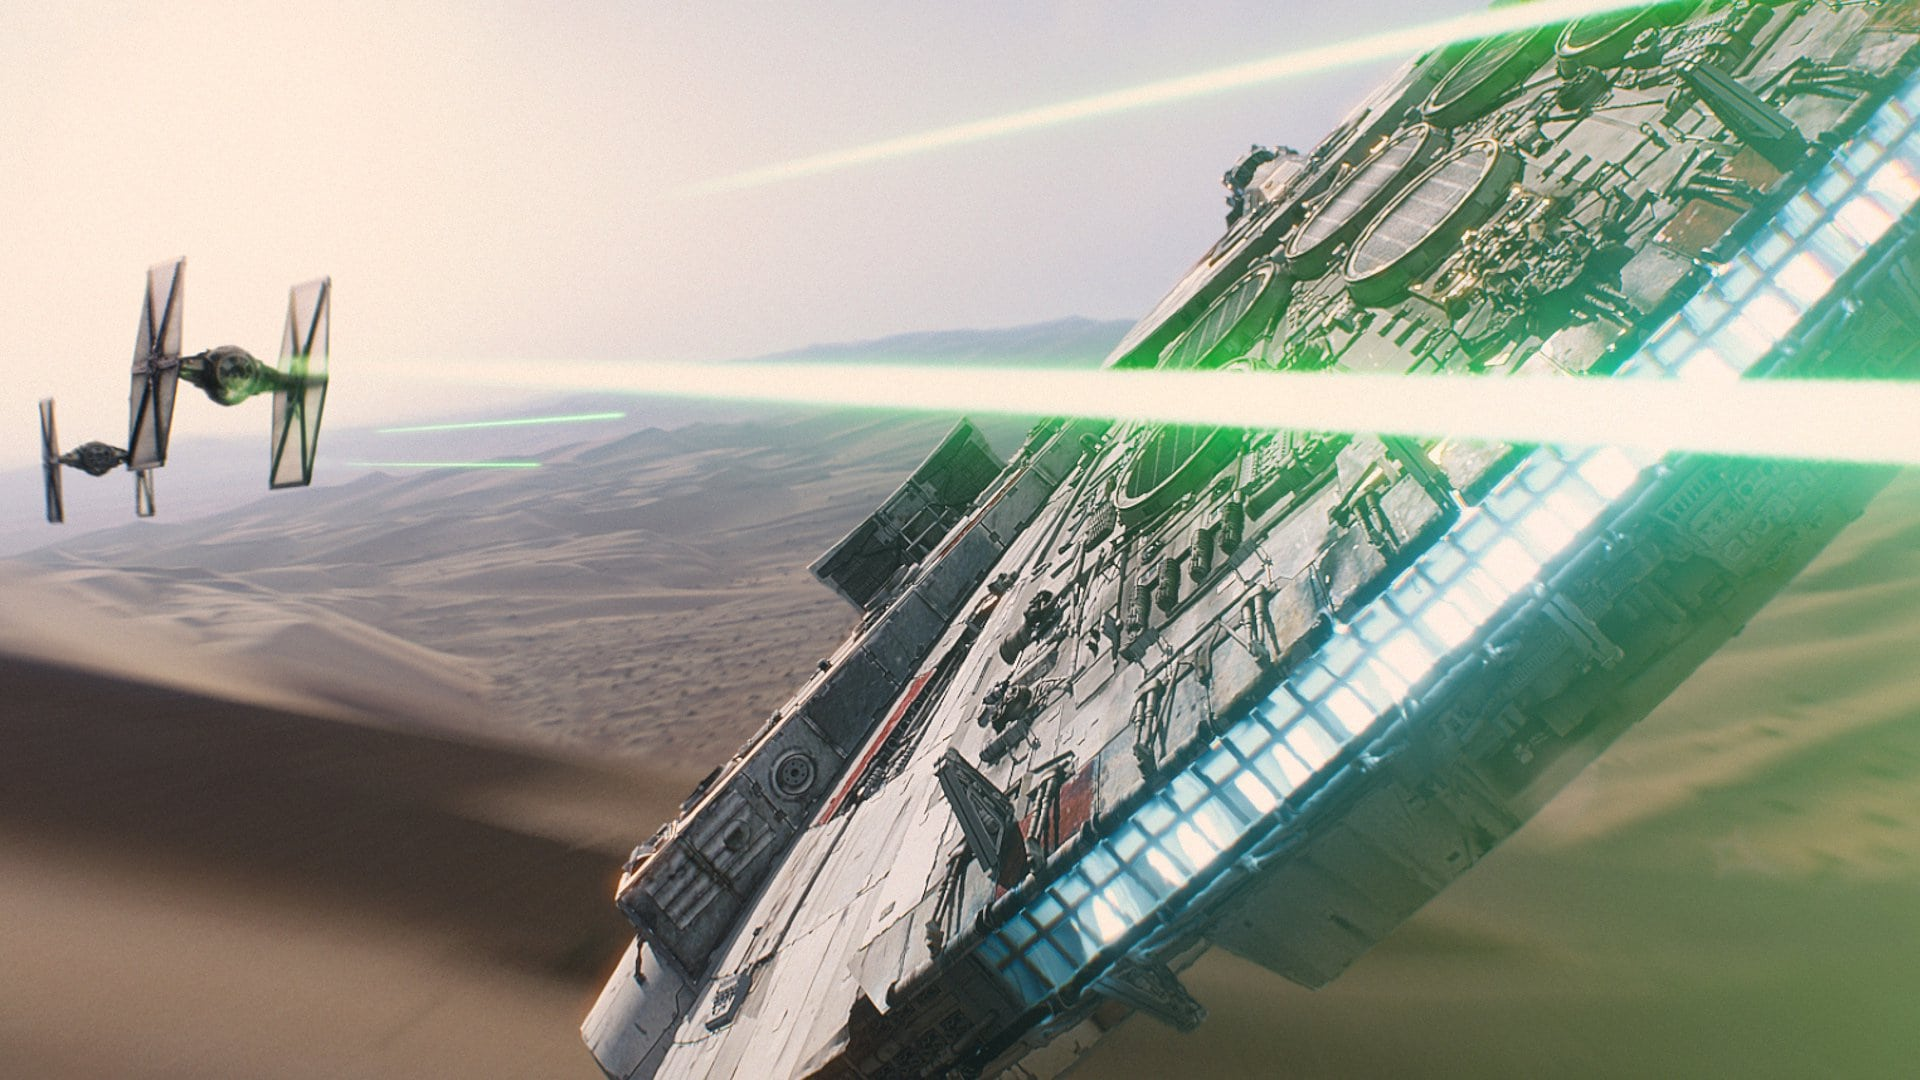 Movie Review of Star Wars: The Force Awakens